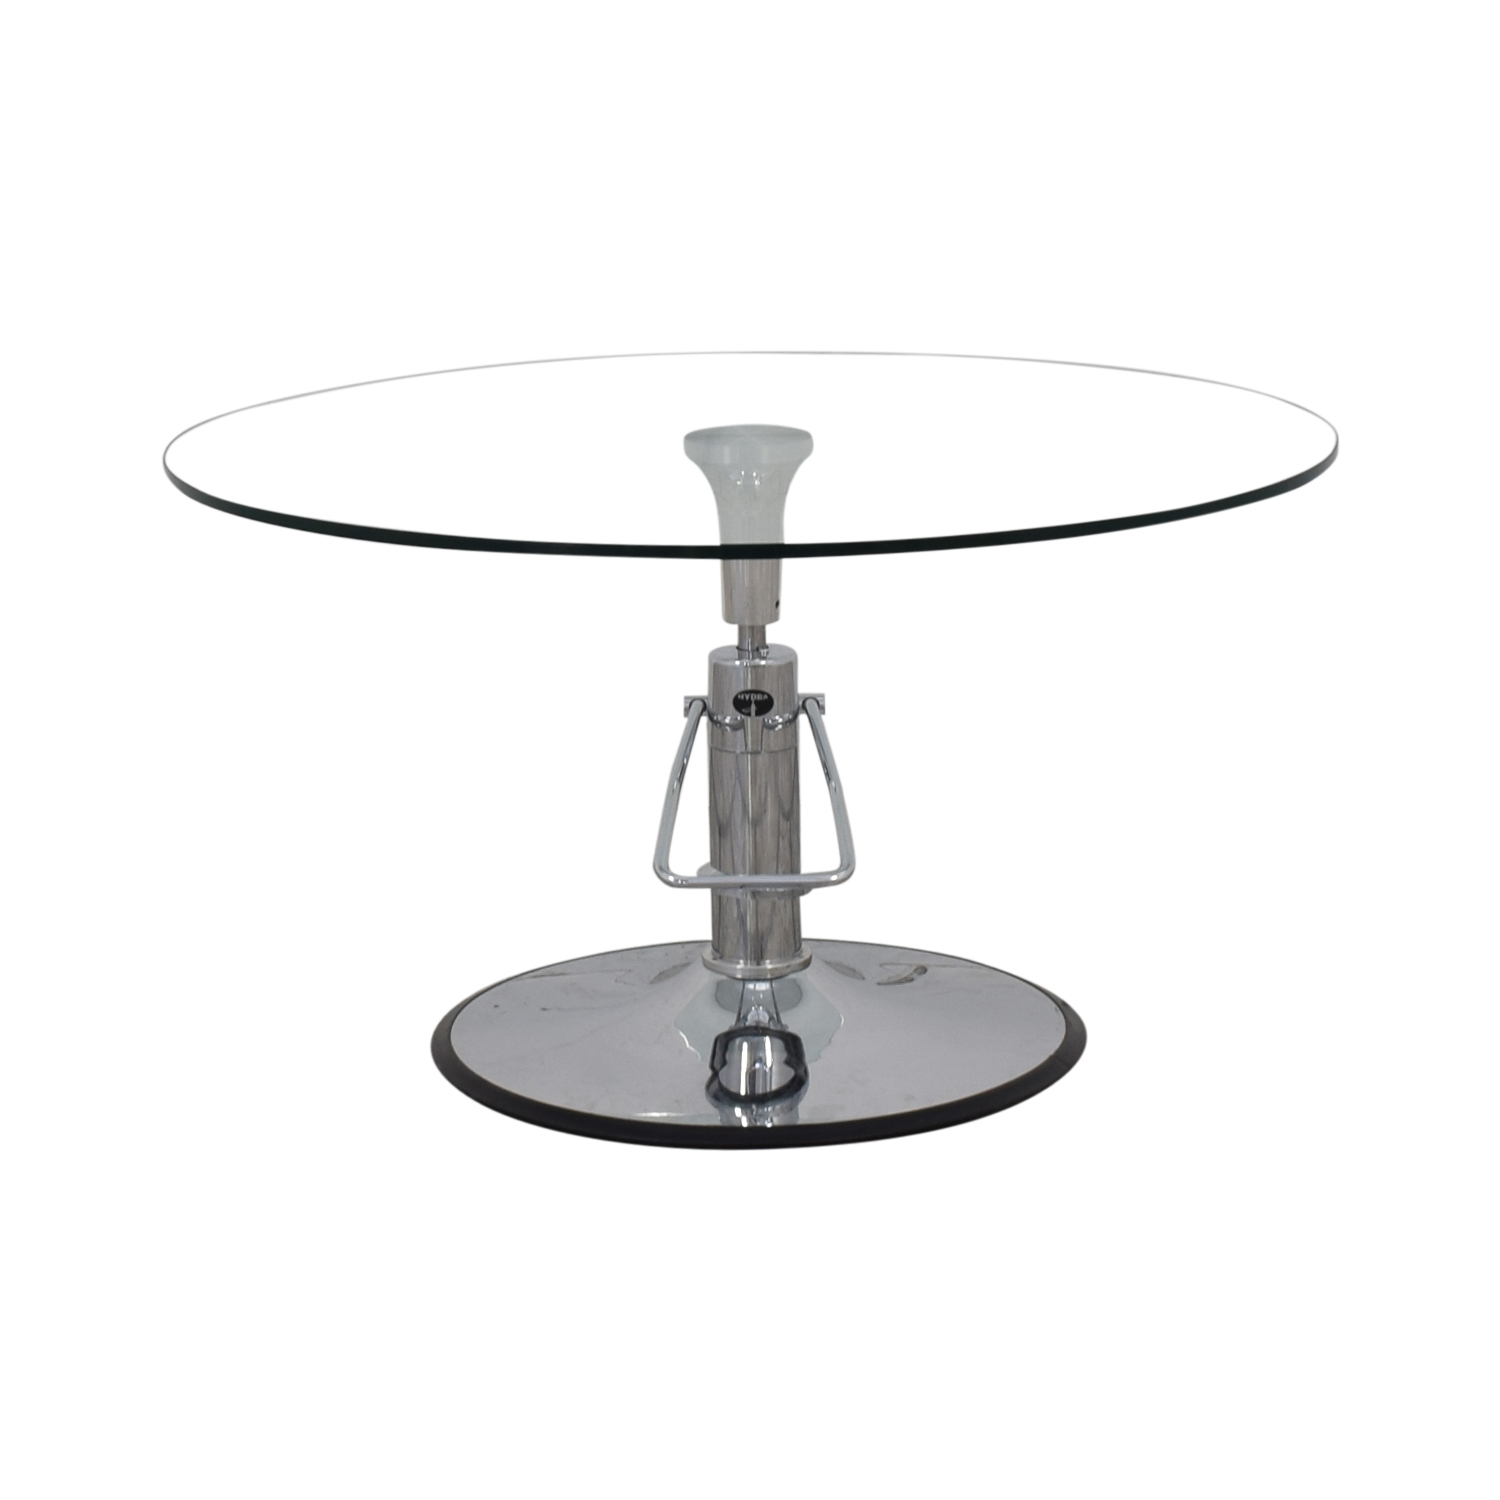 buy Hydra Adjustable Glass Table Hydra Designs Dinner Tables